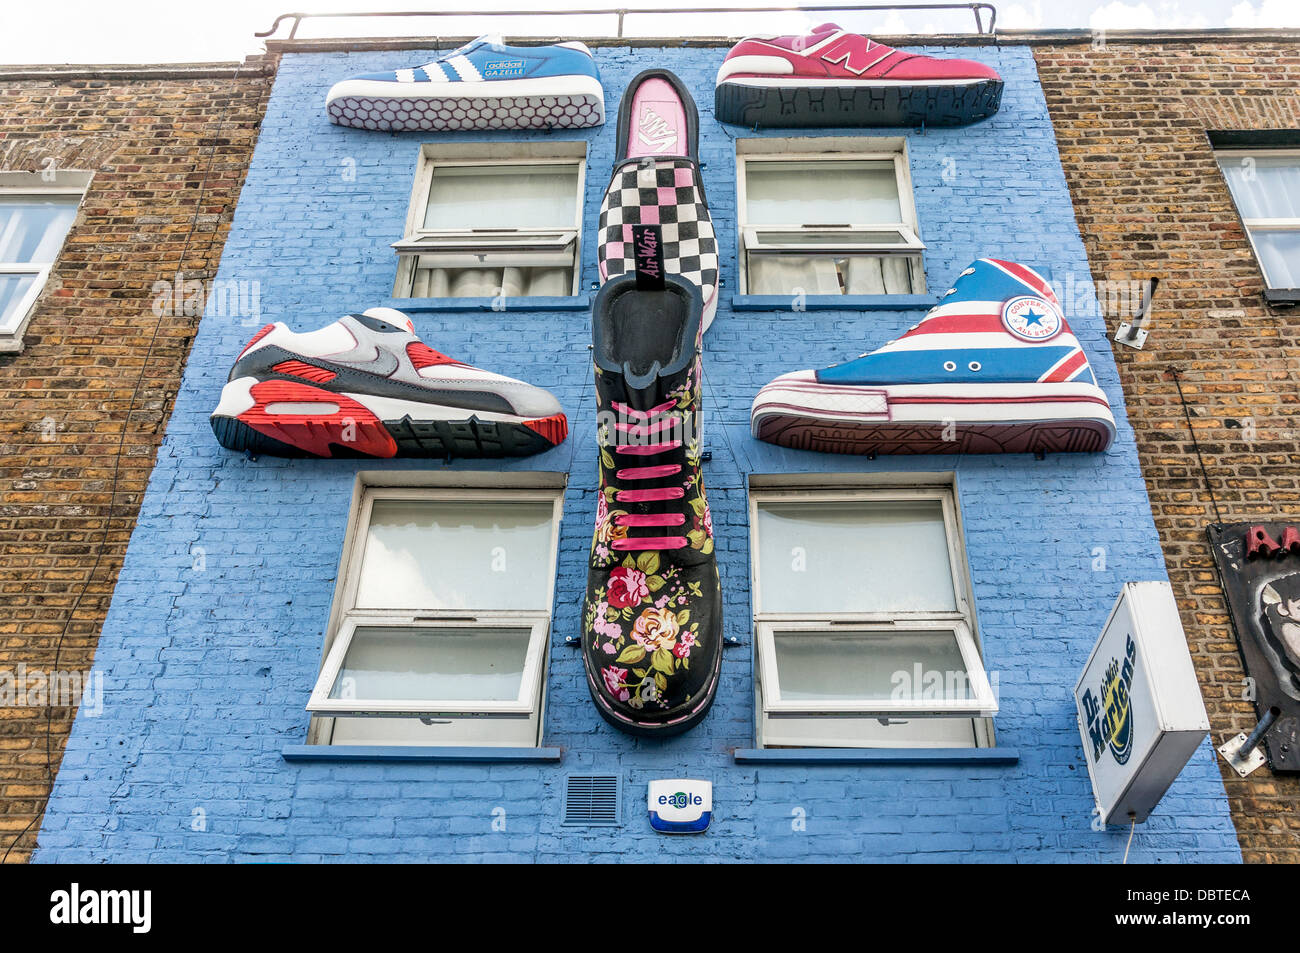 Giant footwear on the wall above a footwear store on Camden high street, near Camden Market, London, England, UK. - Stock Image